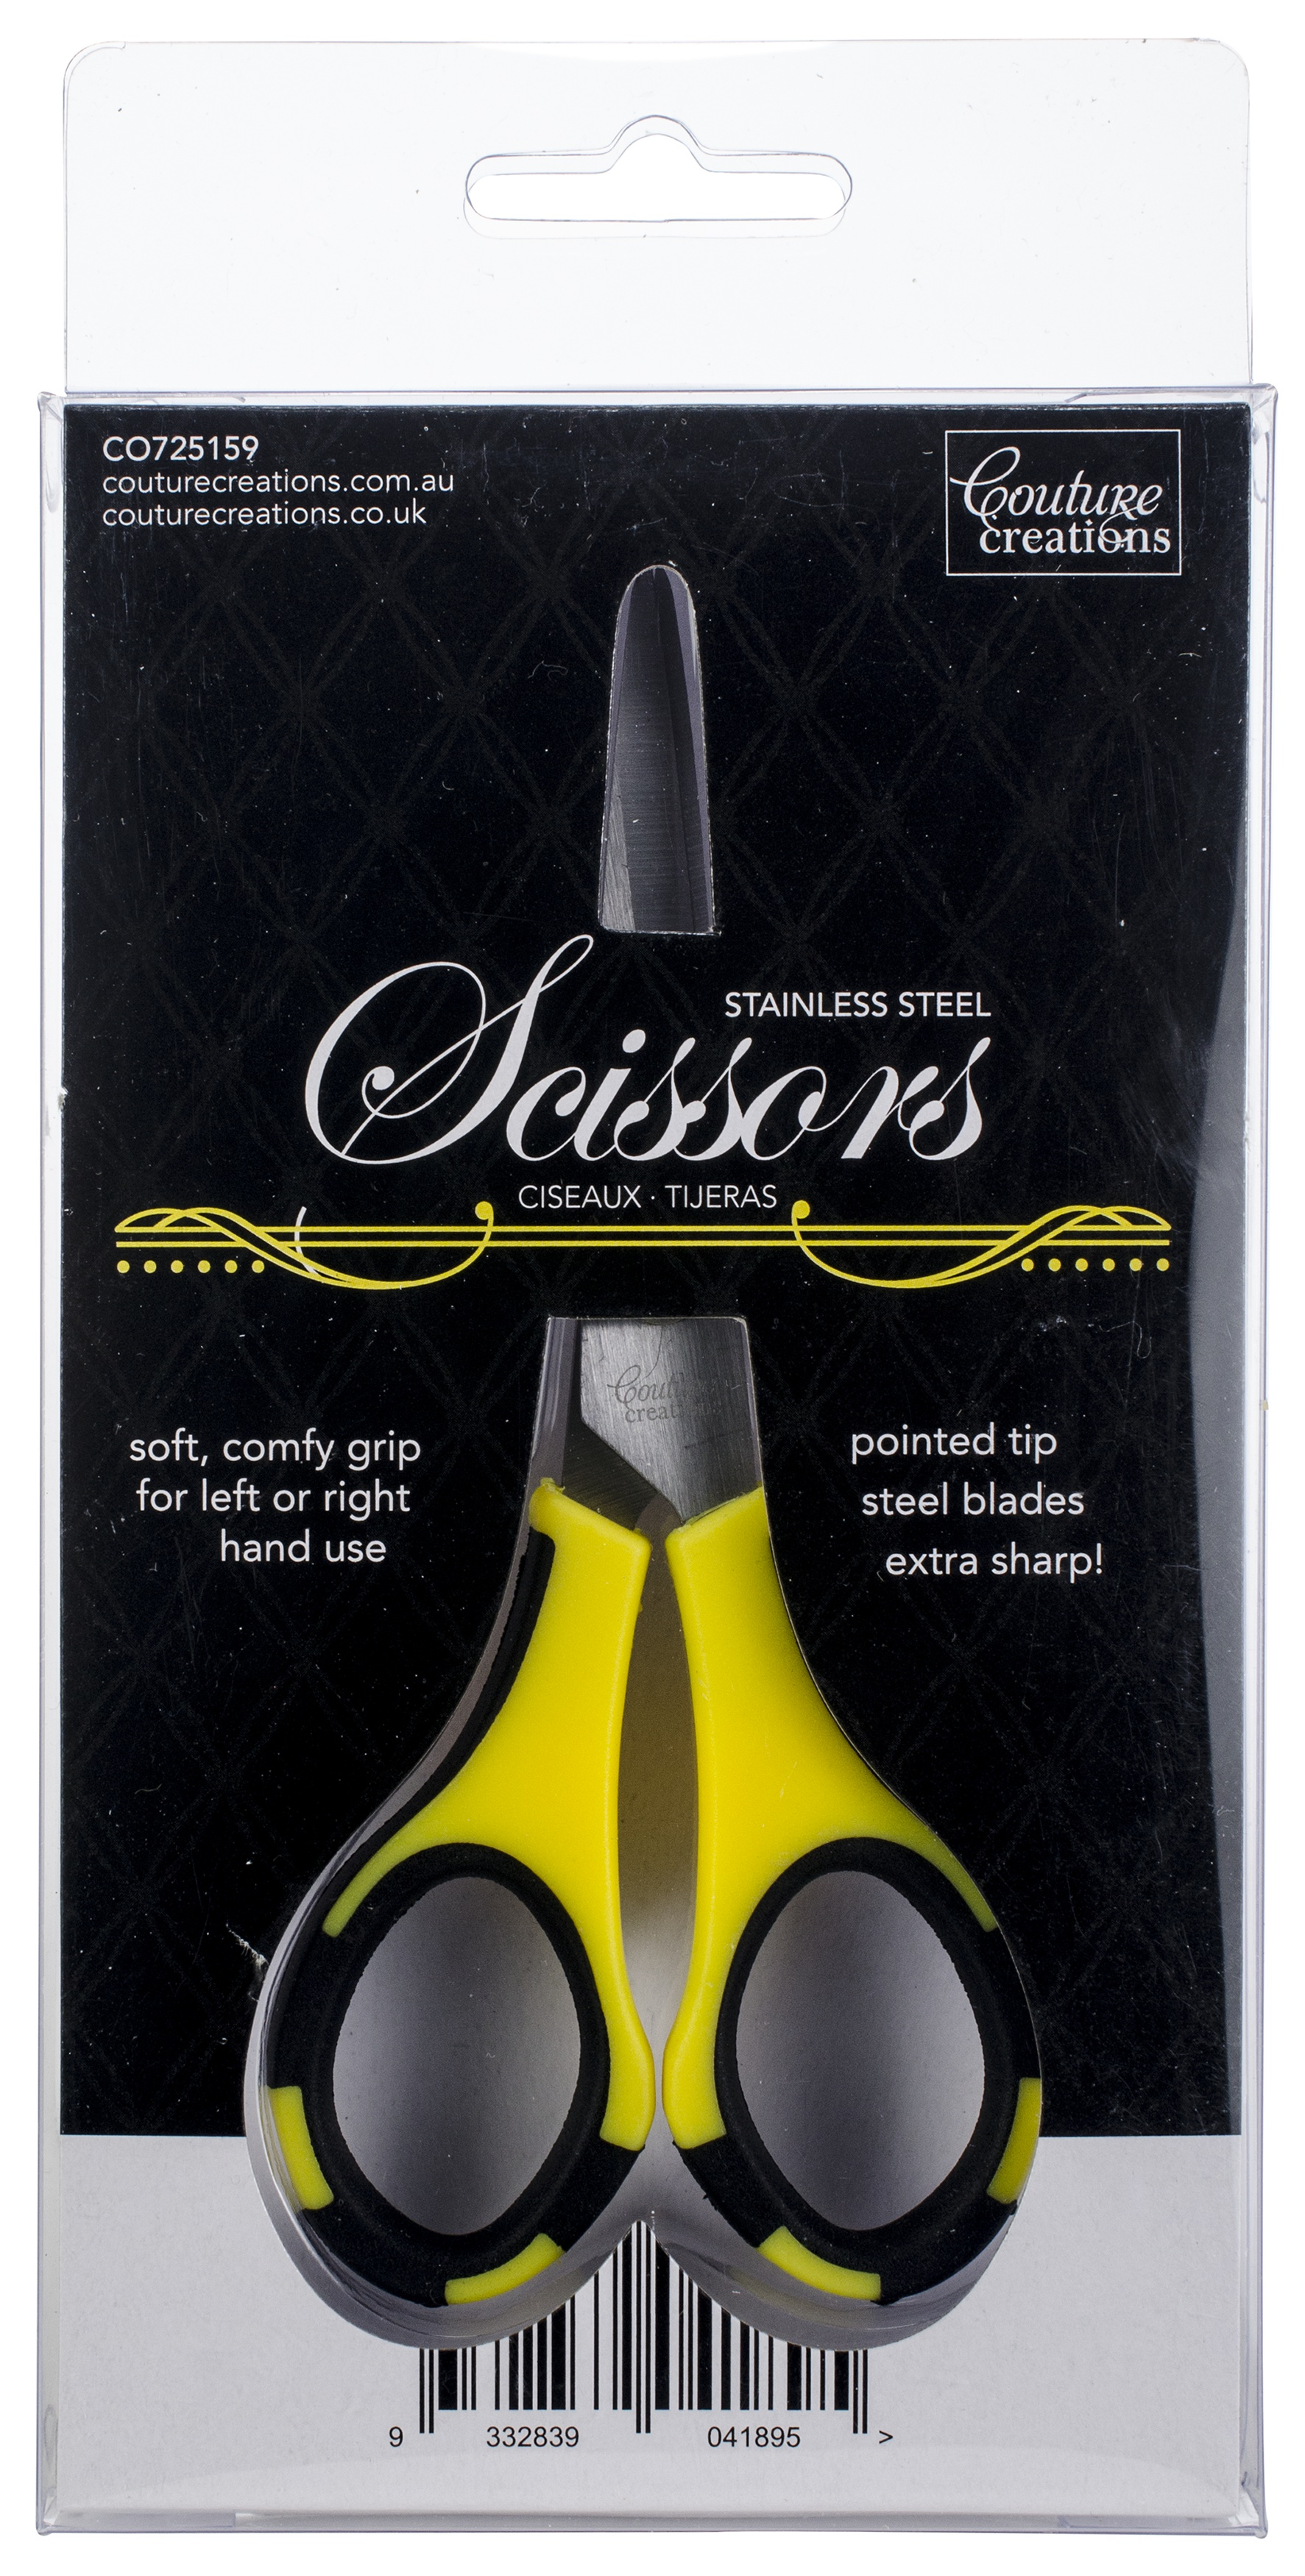 Couture Creations Teflon Scissors 5.5-W/Stainless Steel Blades